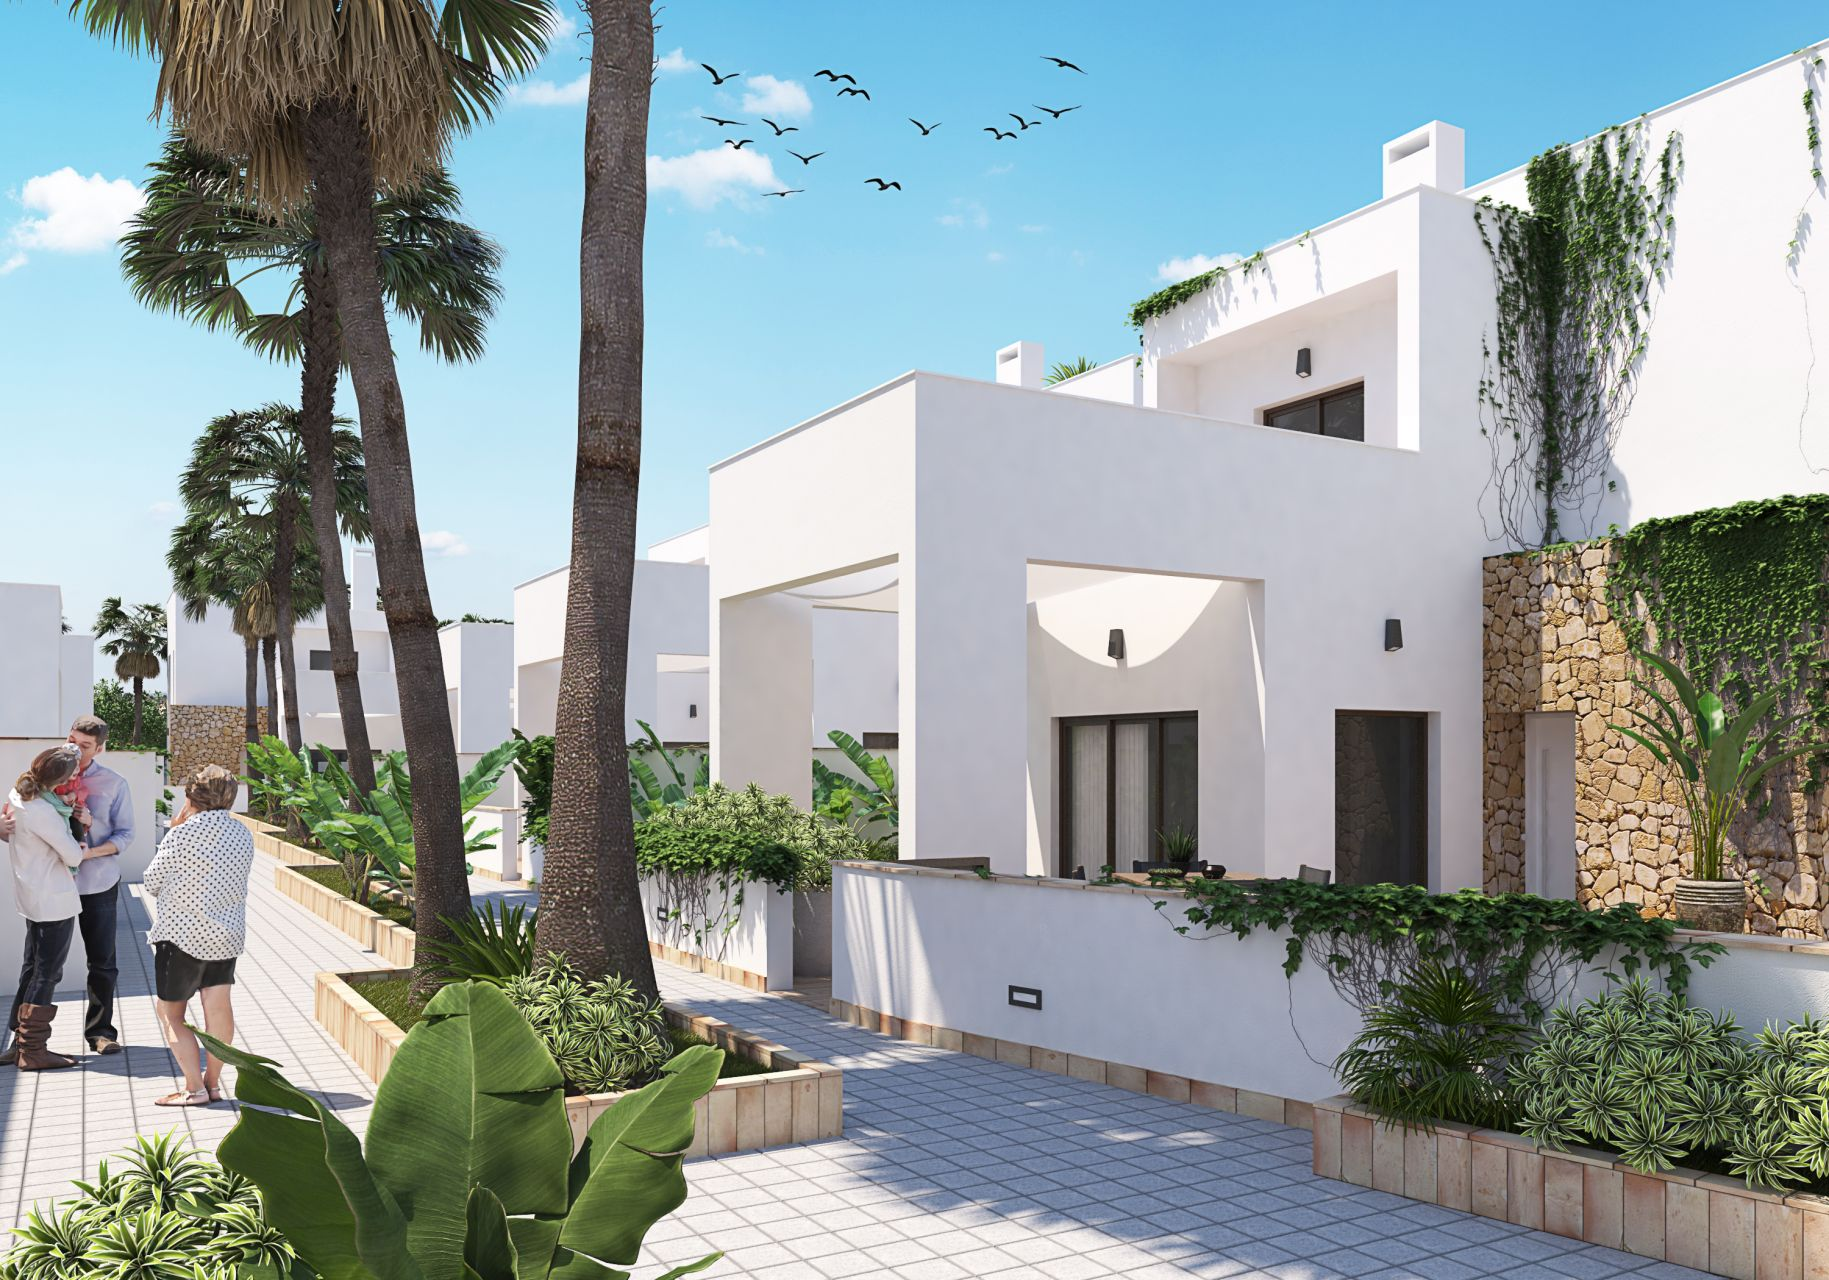 Villas in Torrevieja 2